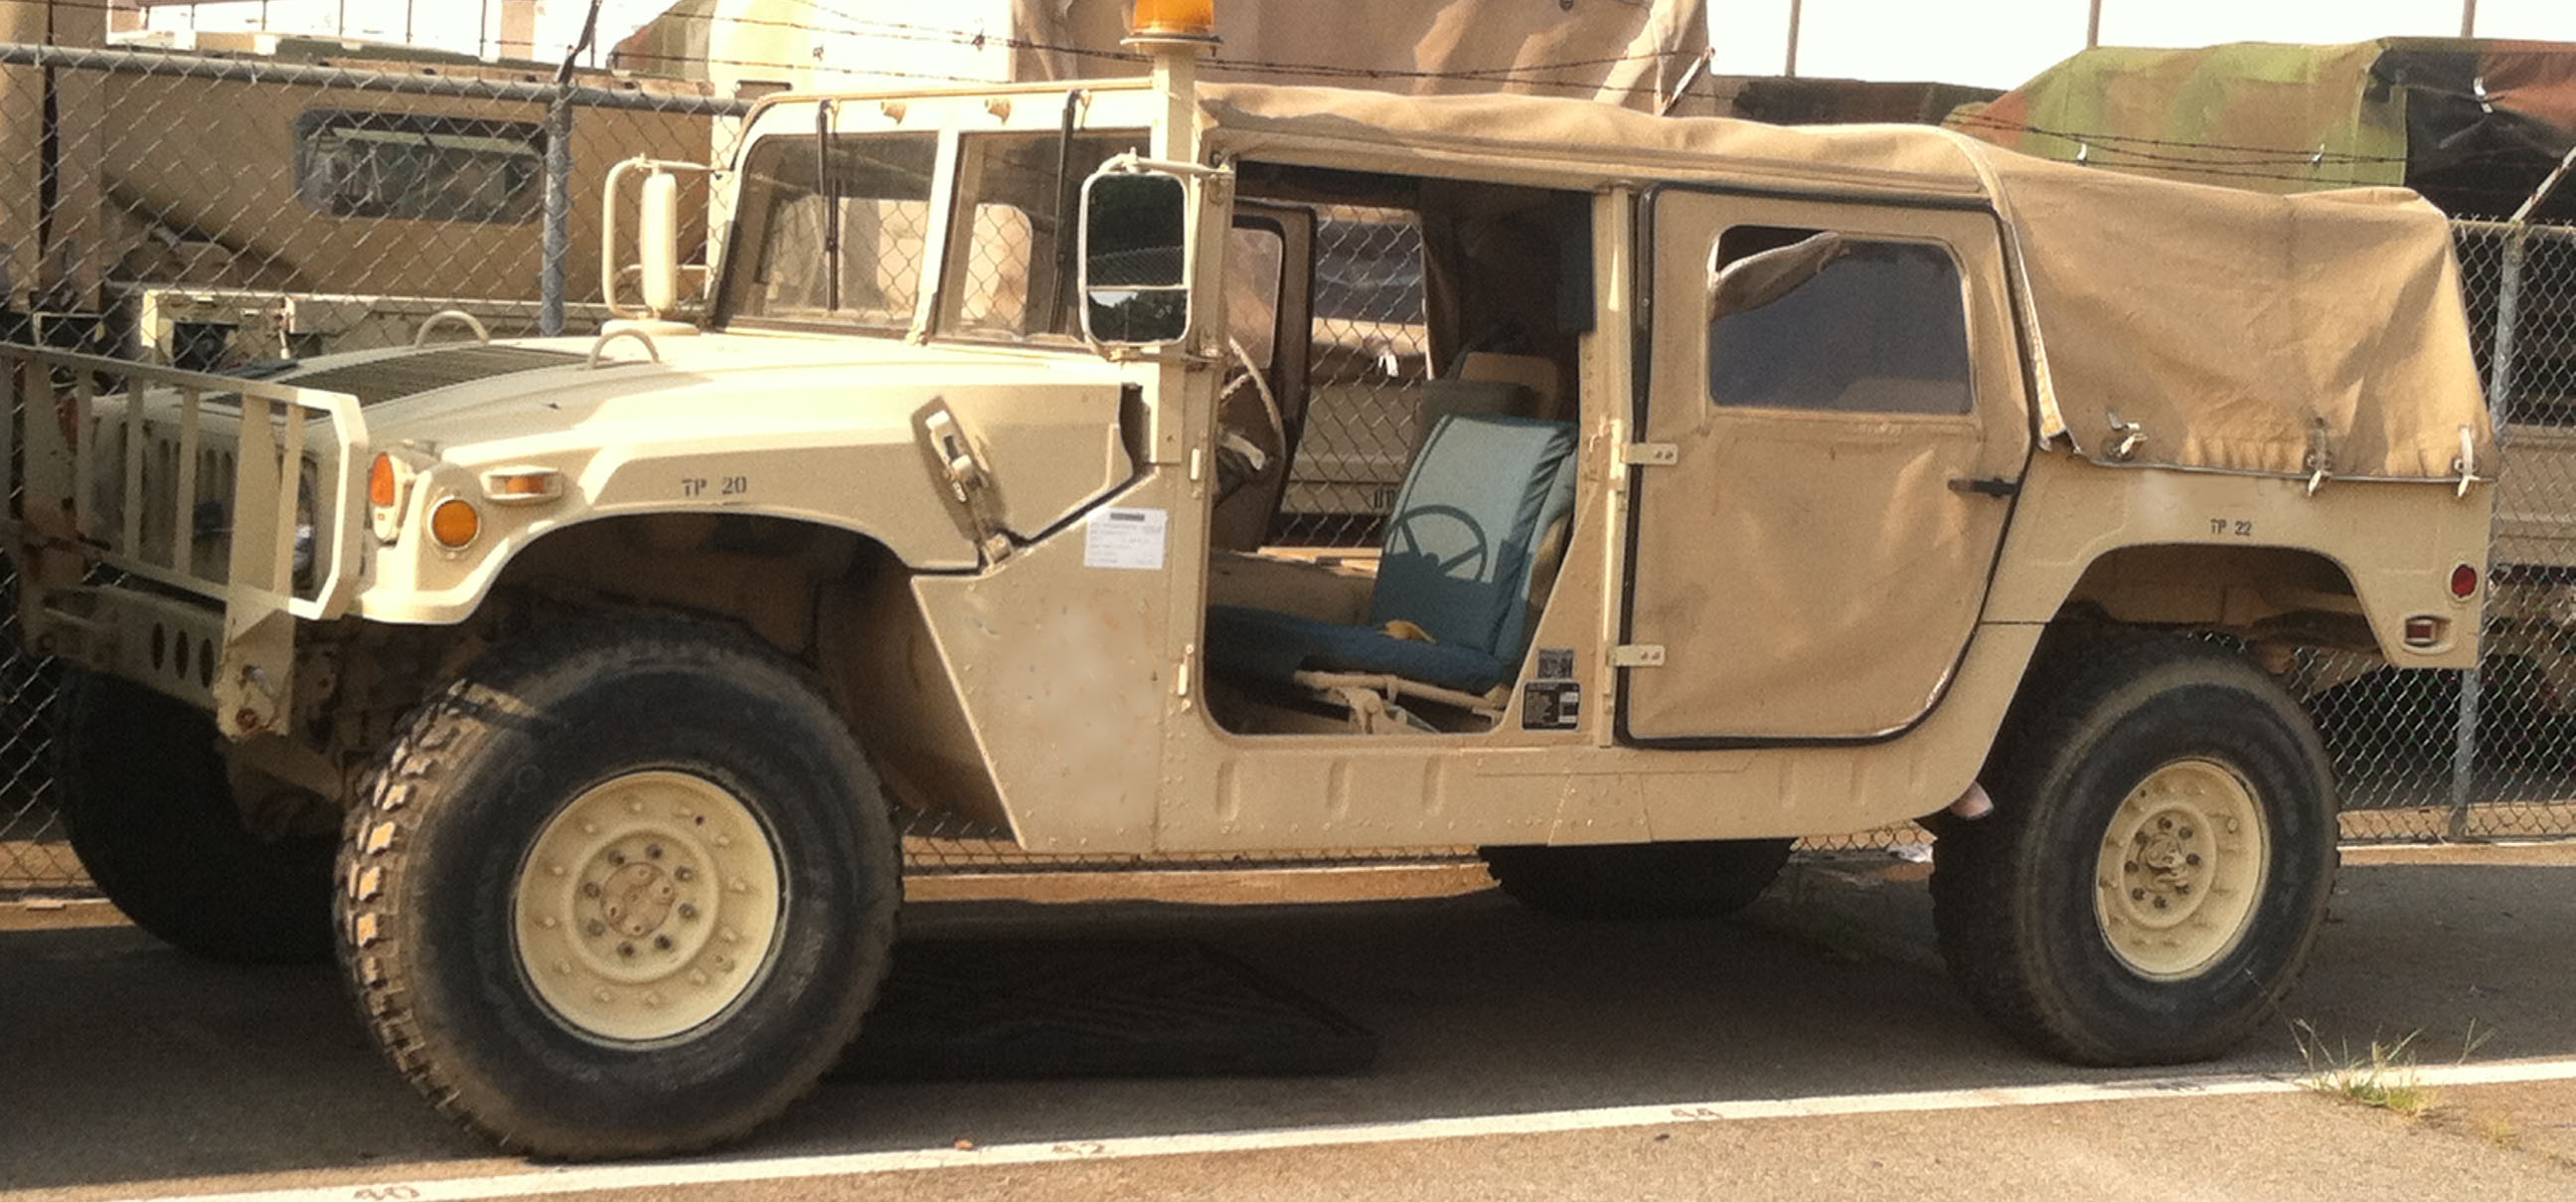 ARMY TM 1444 1444 1444 1444P 144 Technical Manual Humvee M144414448 M144414448A144 | hummer h1 army for sale